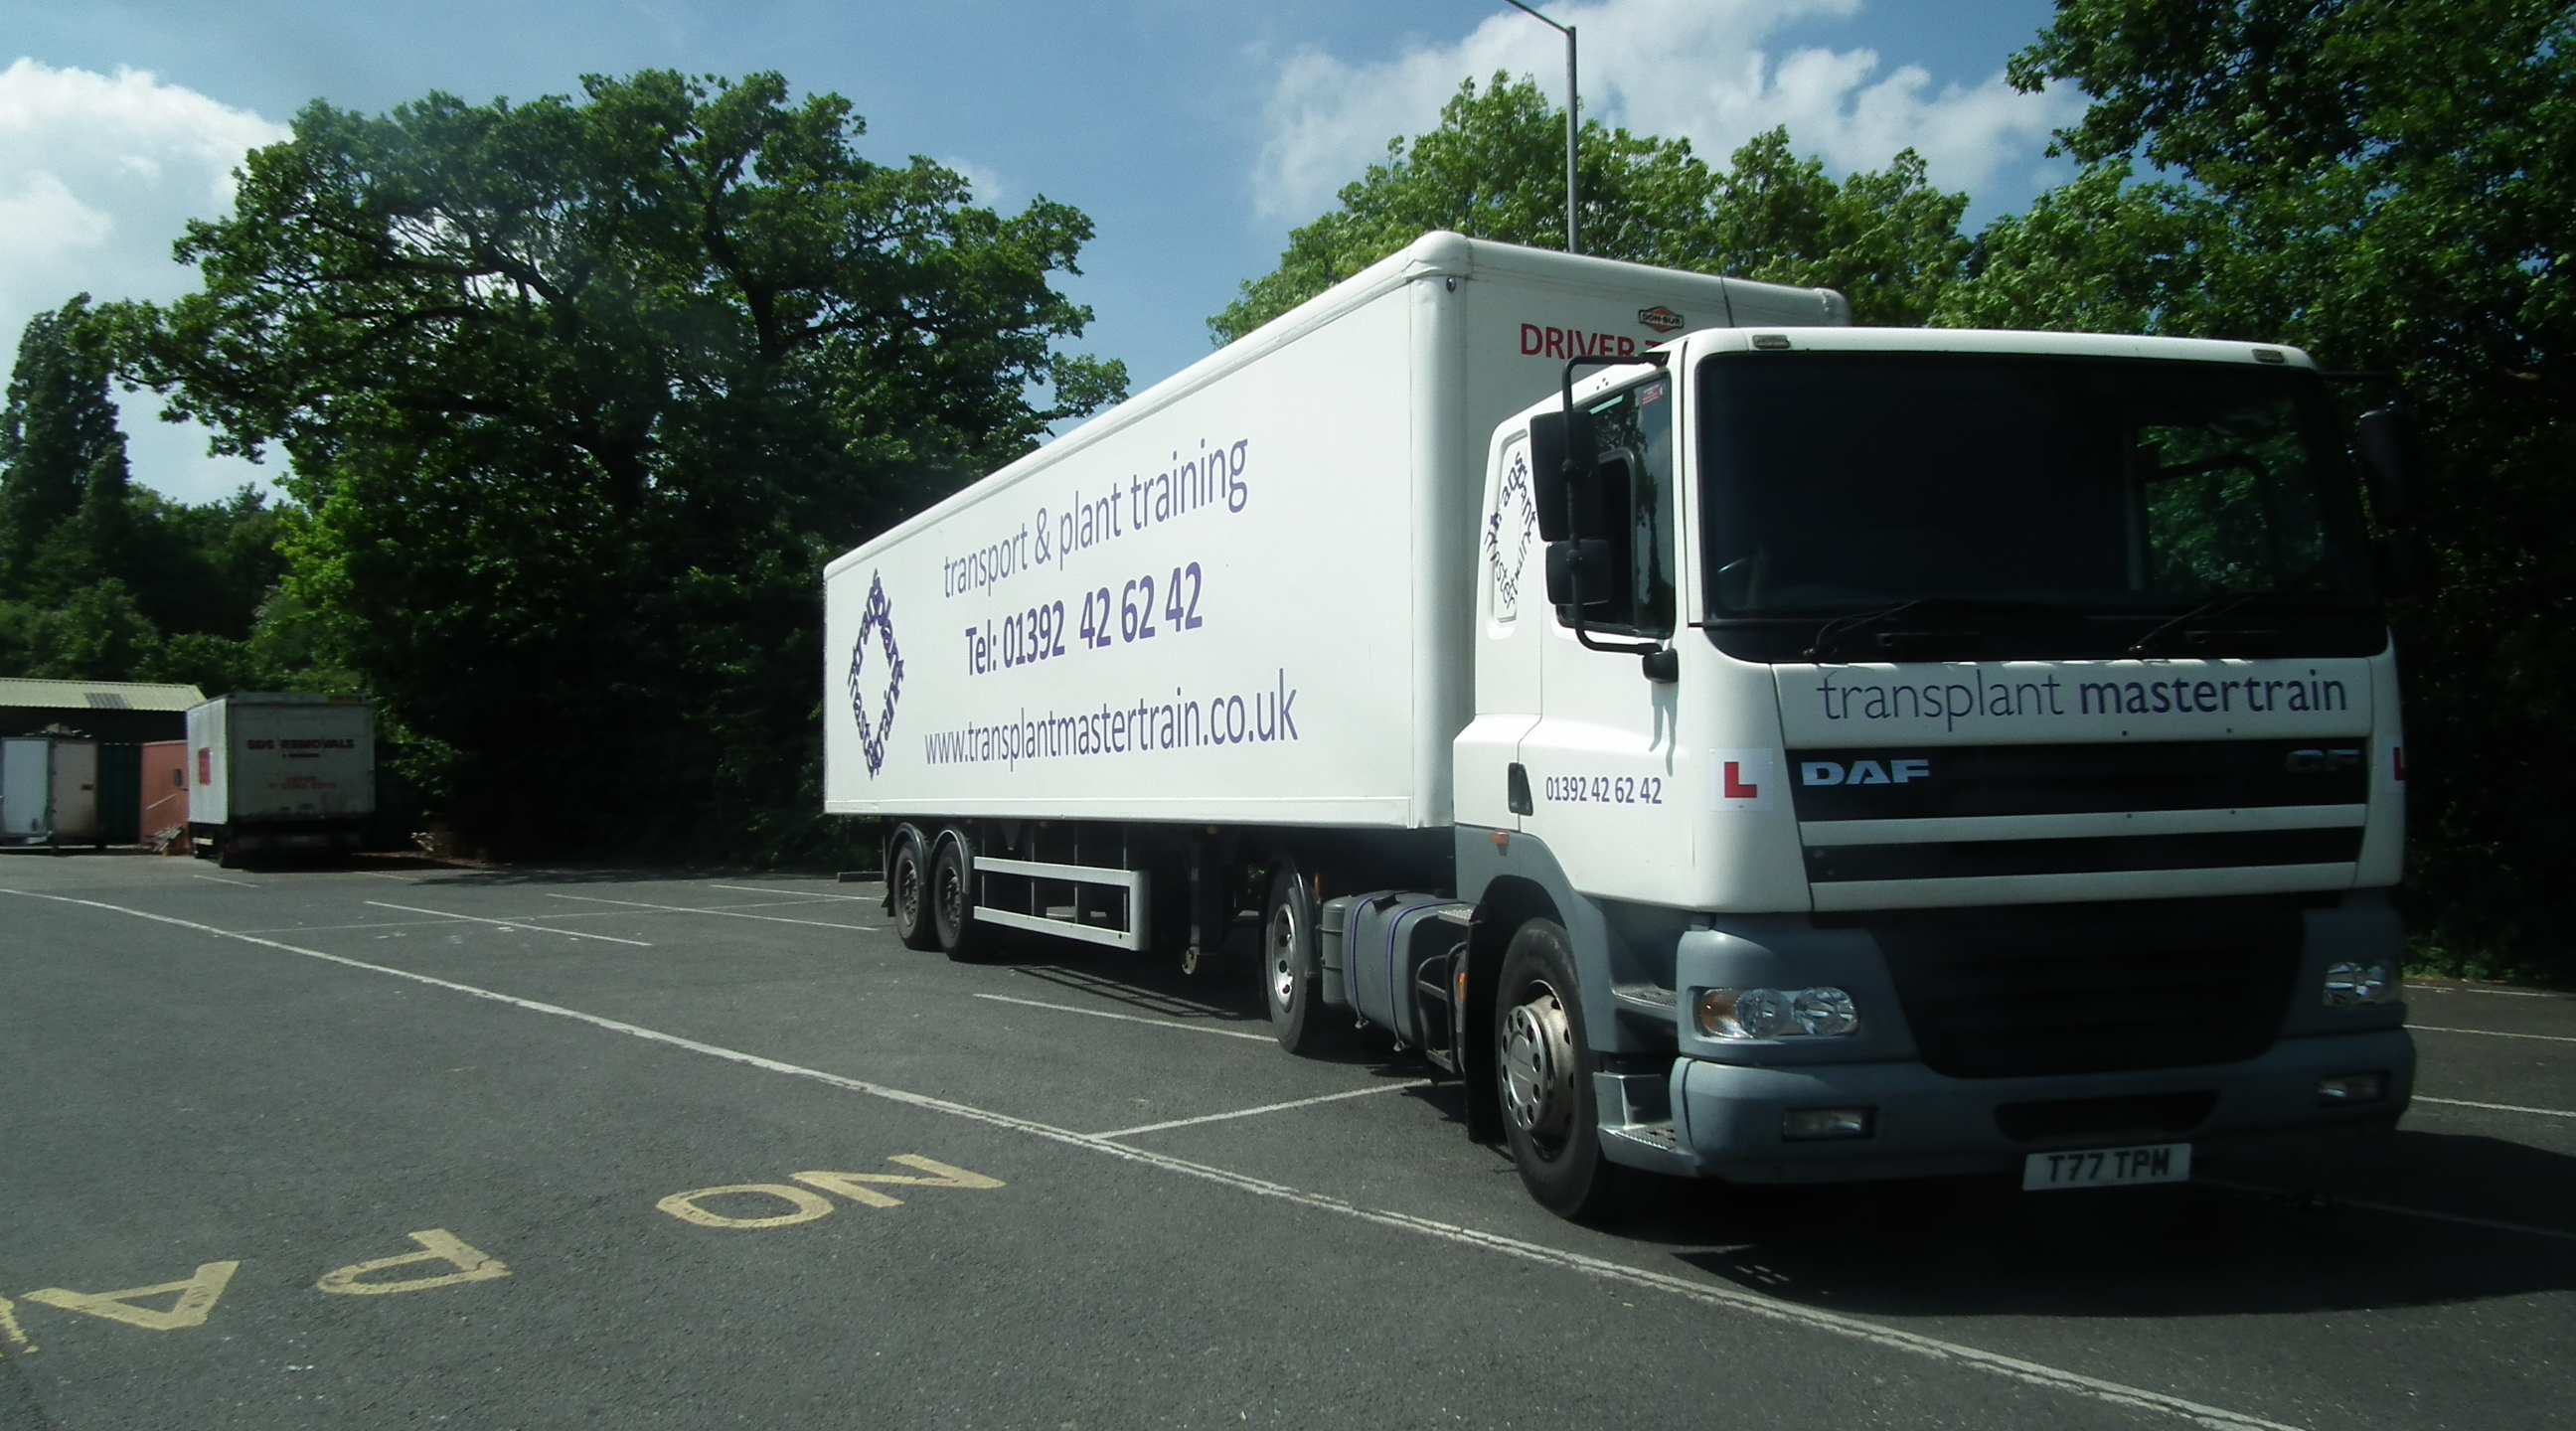 LGV / HGV Lorry Driver Training - Honiton quote